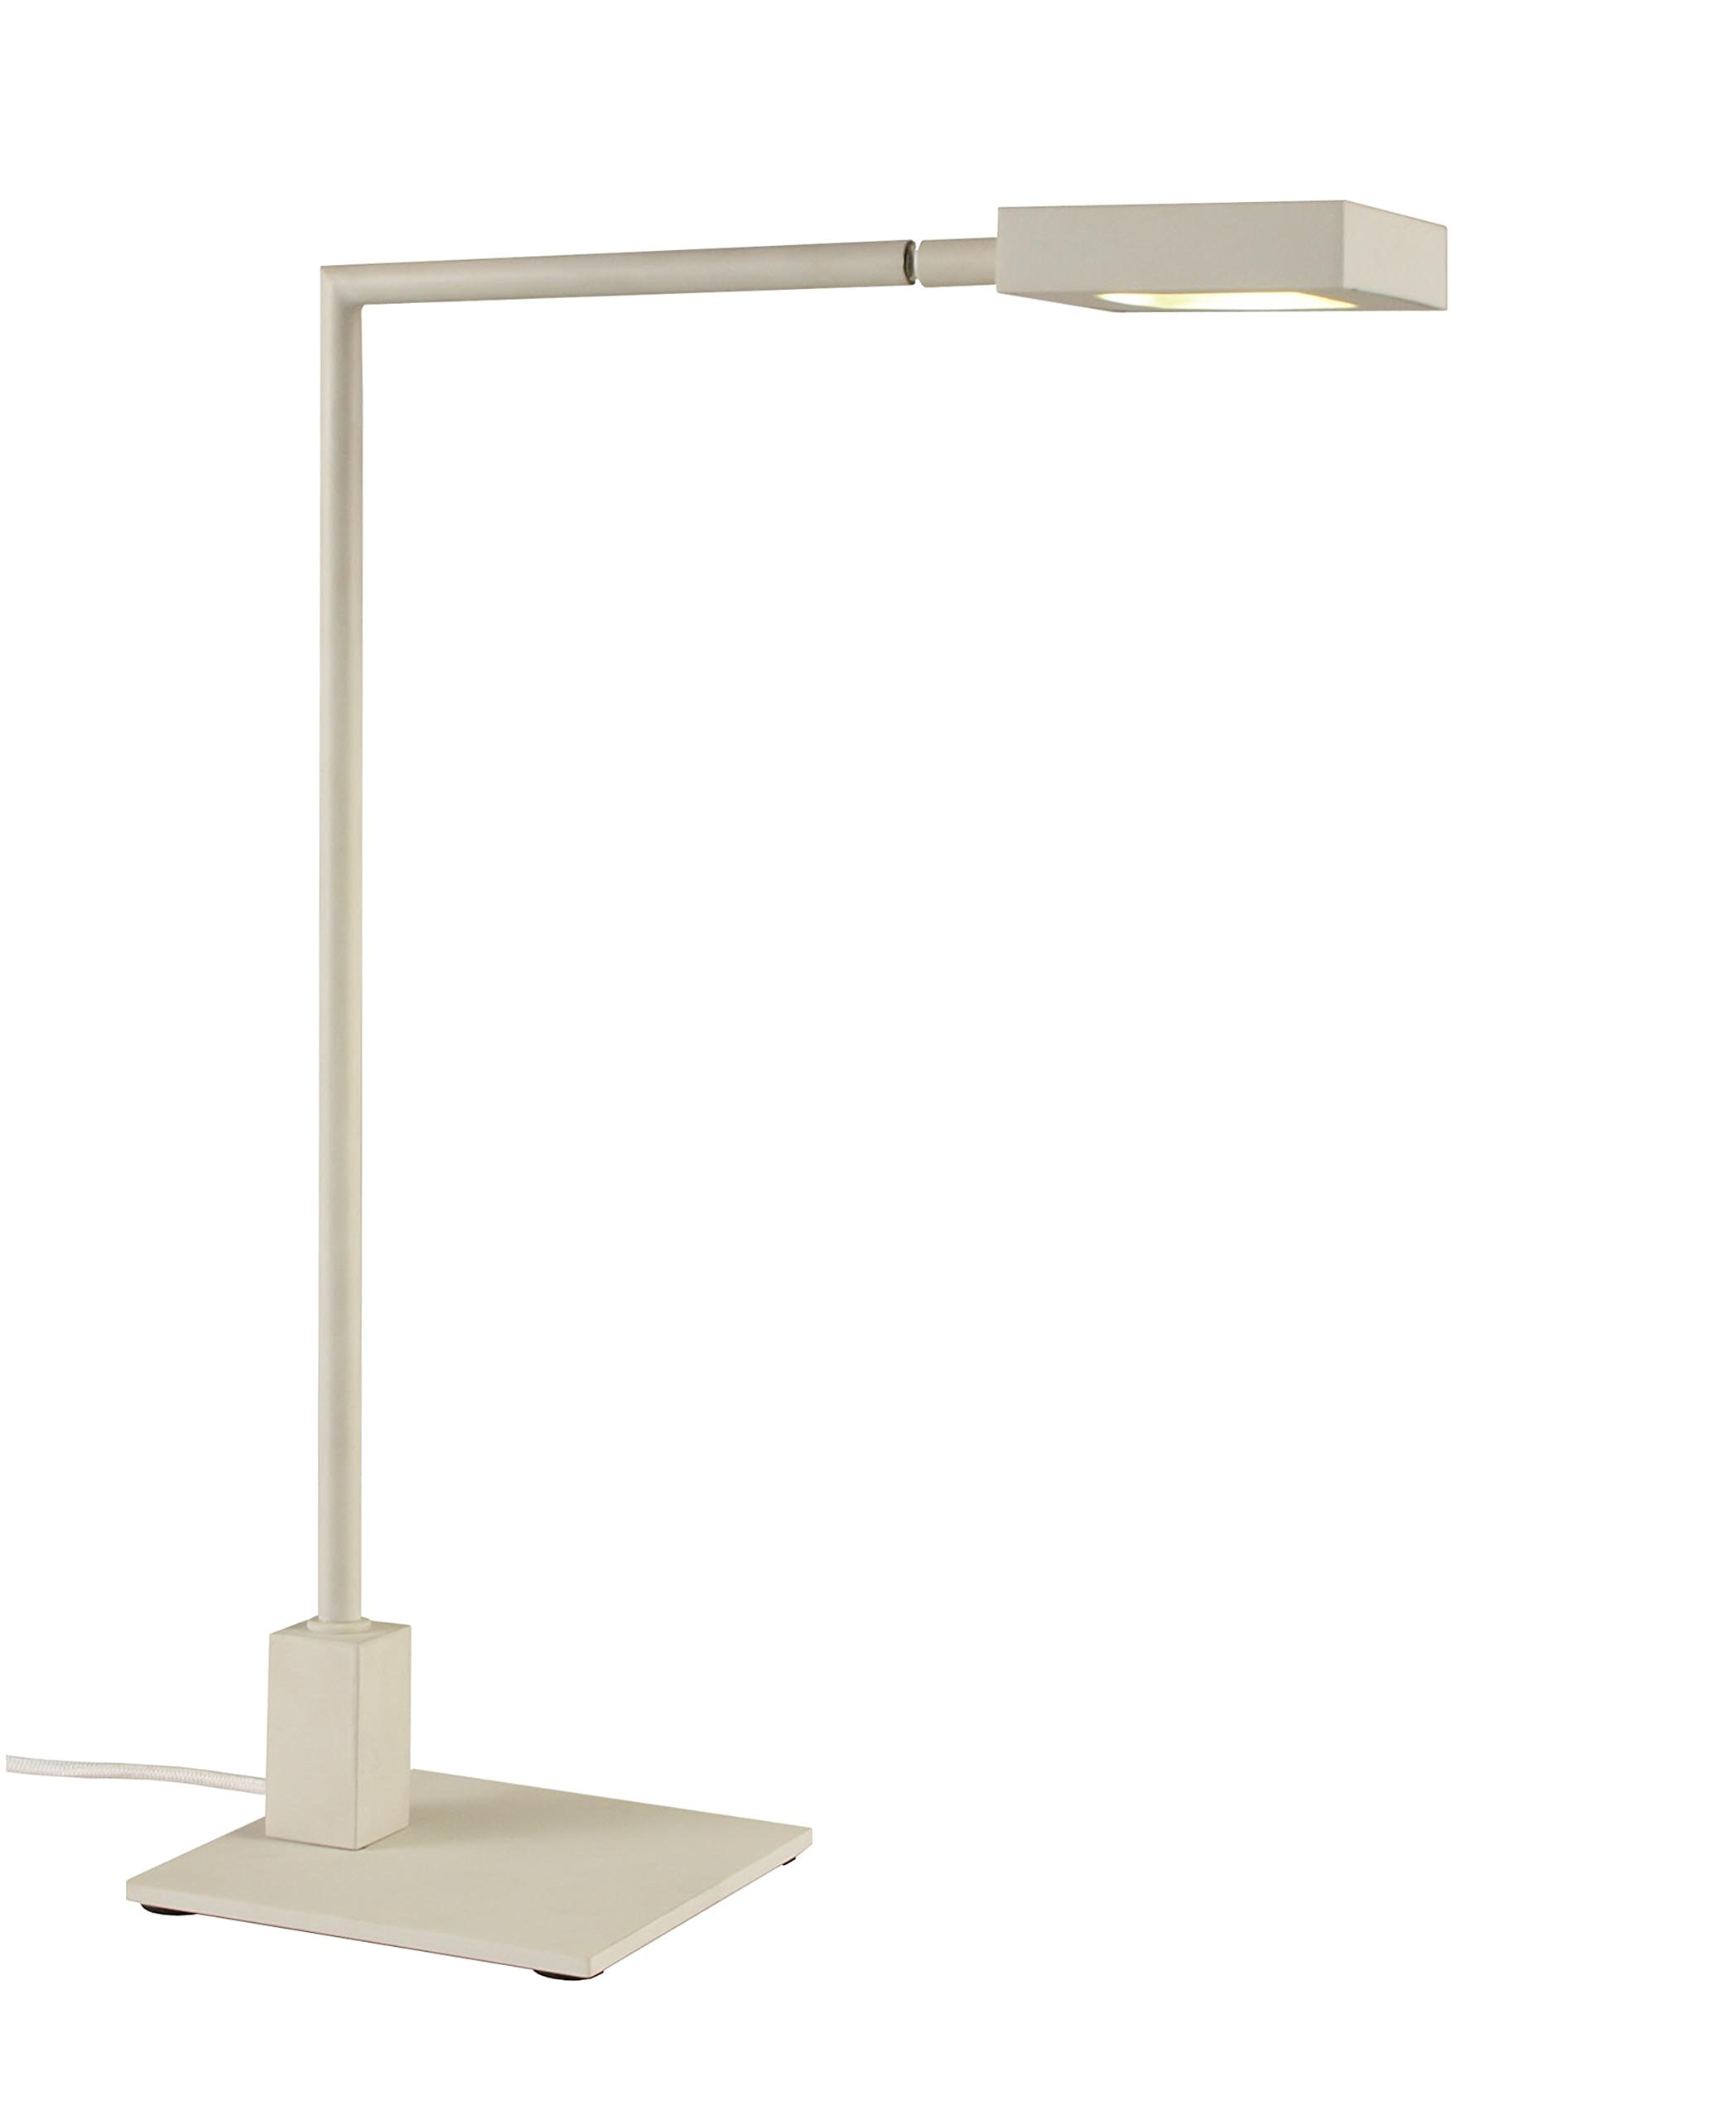 Seed Design USA Square Table Lamp, White